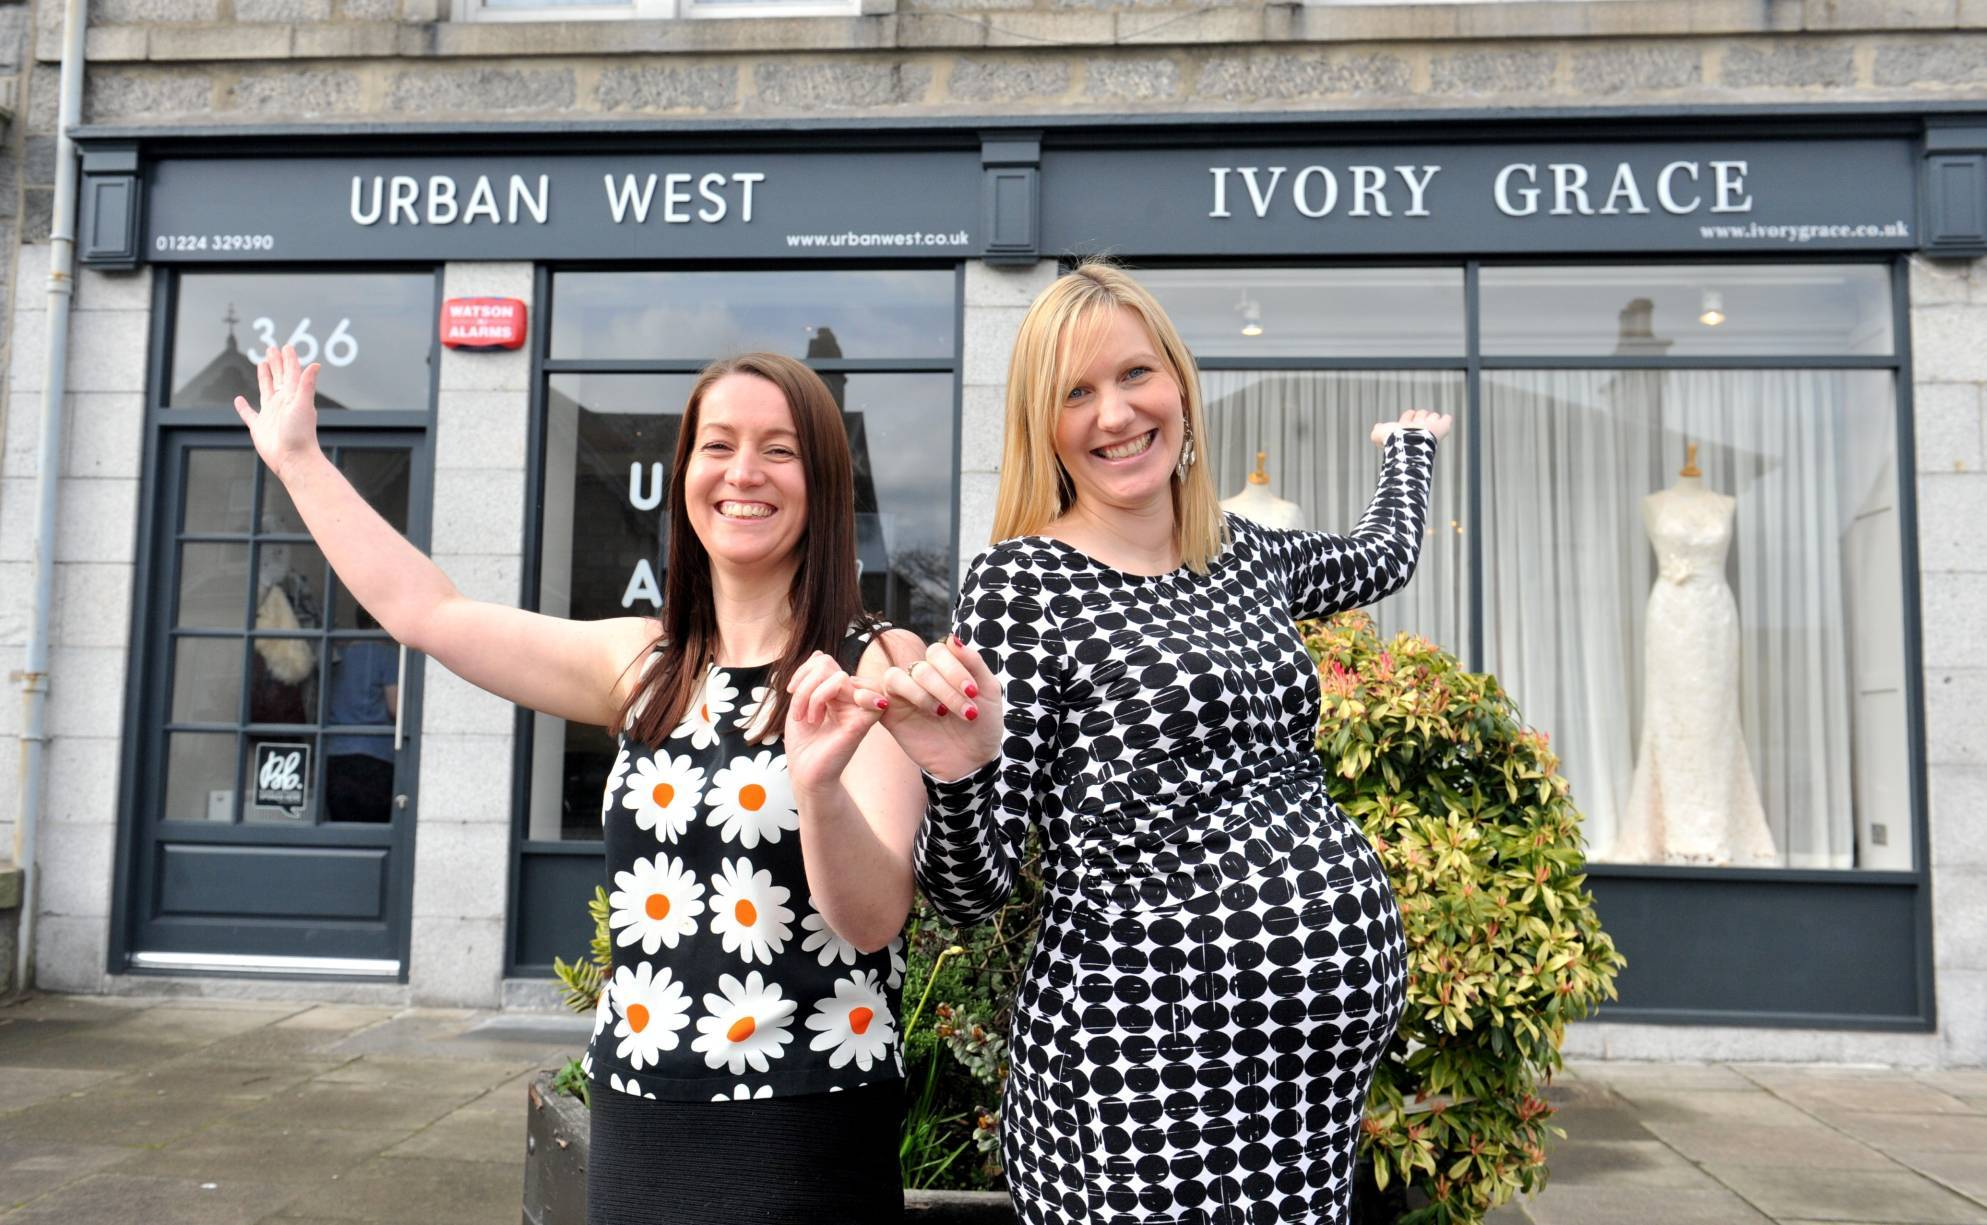 Susie Shand, owner of Urban West, and Kayleigh Brown, owner of Ivory Grace